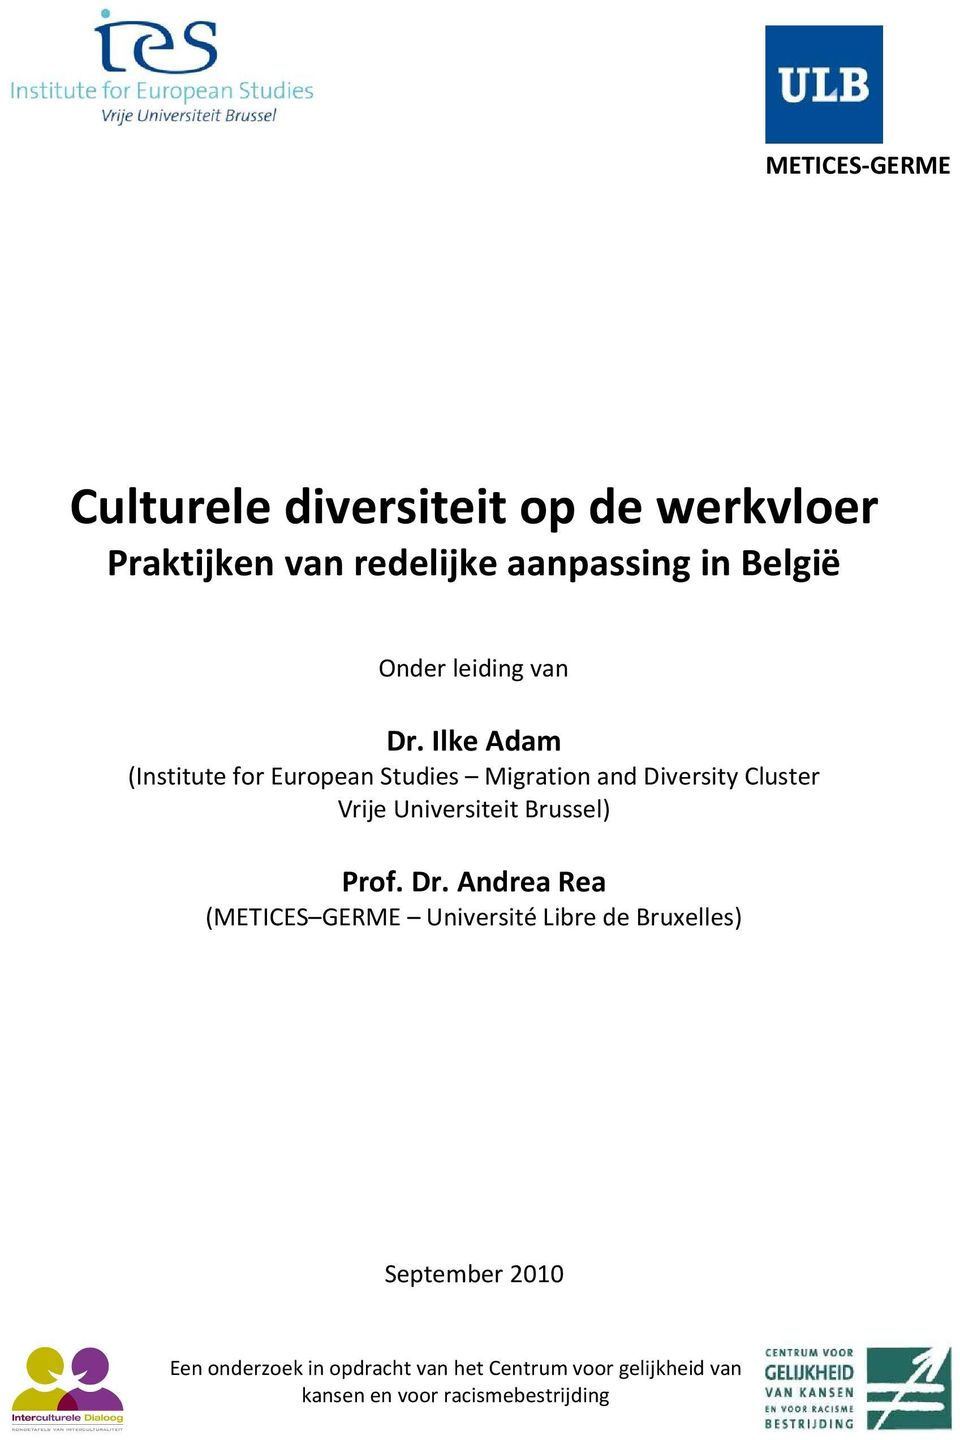 Ilke Adam (Institute for European Studies Migration and Diversity Cluster Vrije Universiteit